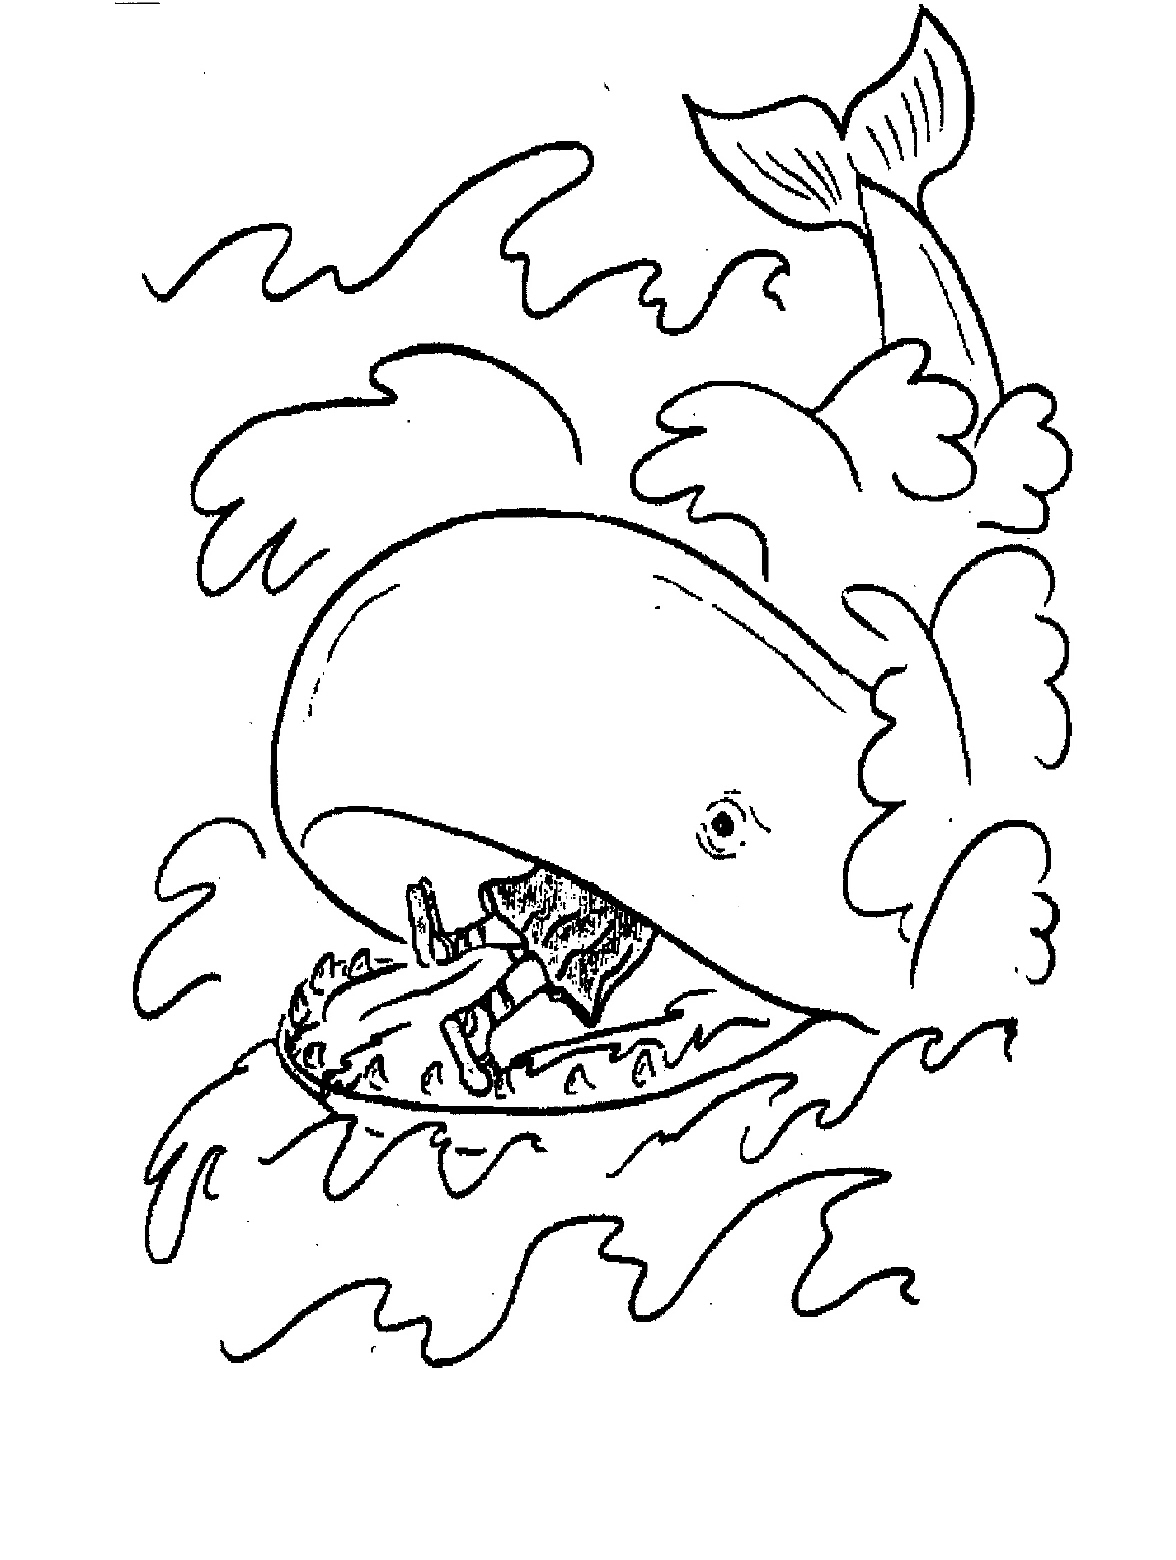 Free bible story coloring pages for kids - Coloring Pages Of Jonah And The Whale